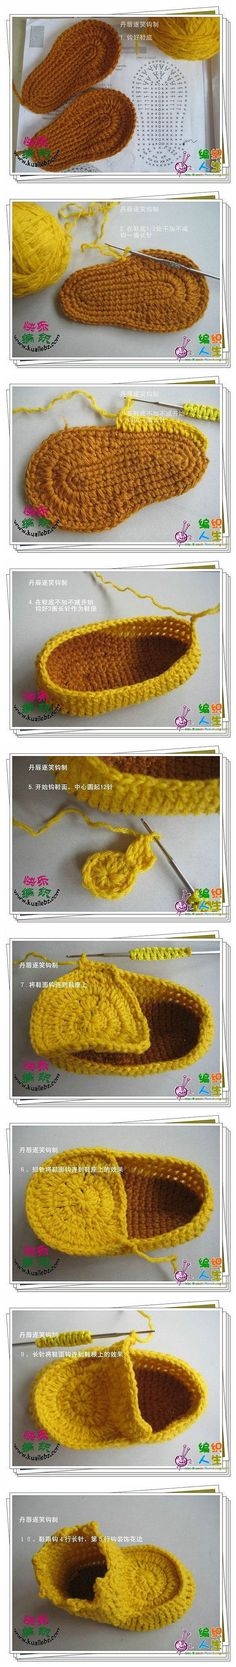 Crochet booties tutorial! And no, I don't speak Japanese but did learn at a young age to simply follow their templates by simply copying the stitches.  Very cool.